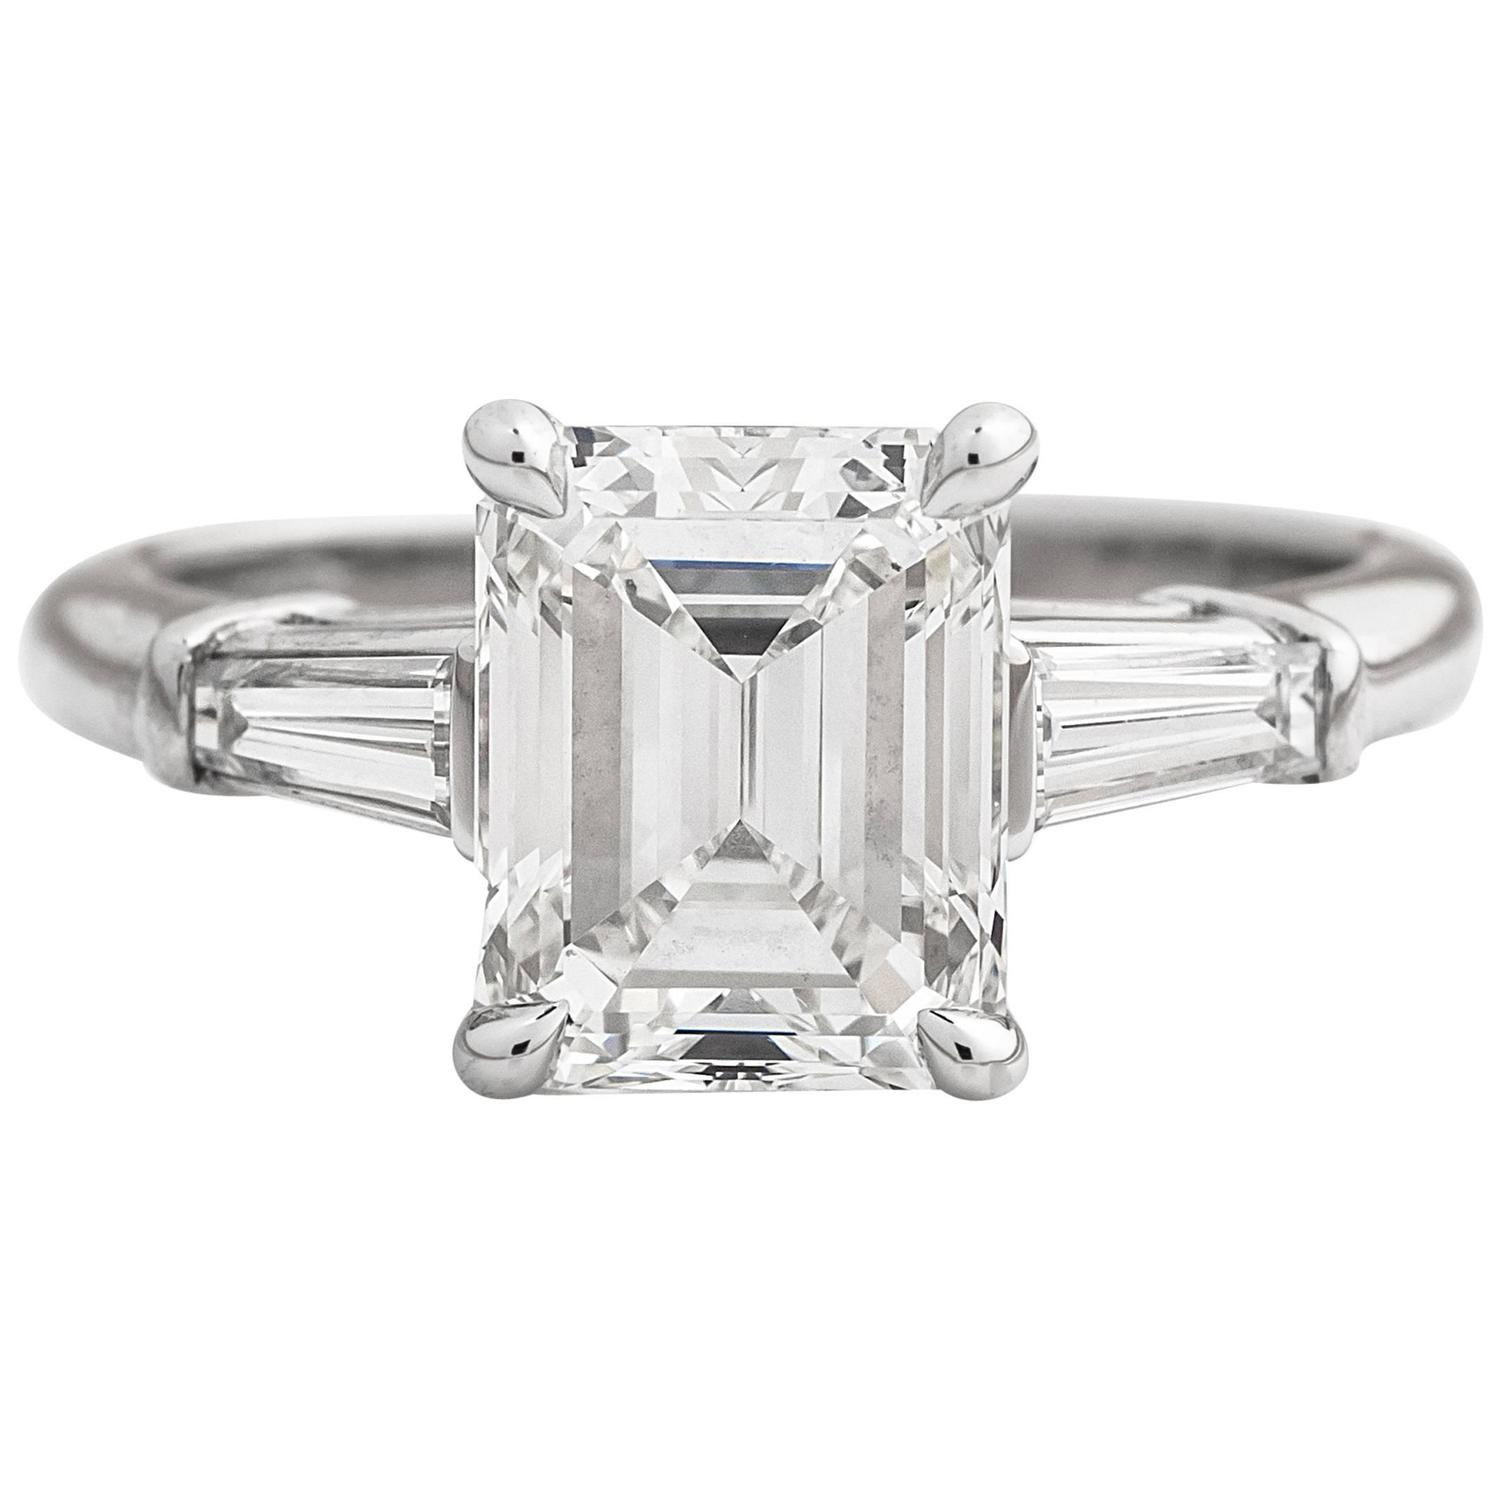 tiffany and co 2 17cttw emerald cut diamond platinum engagement